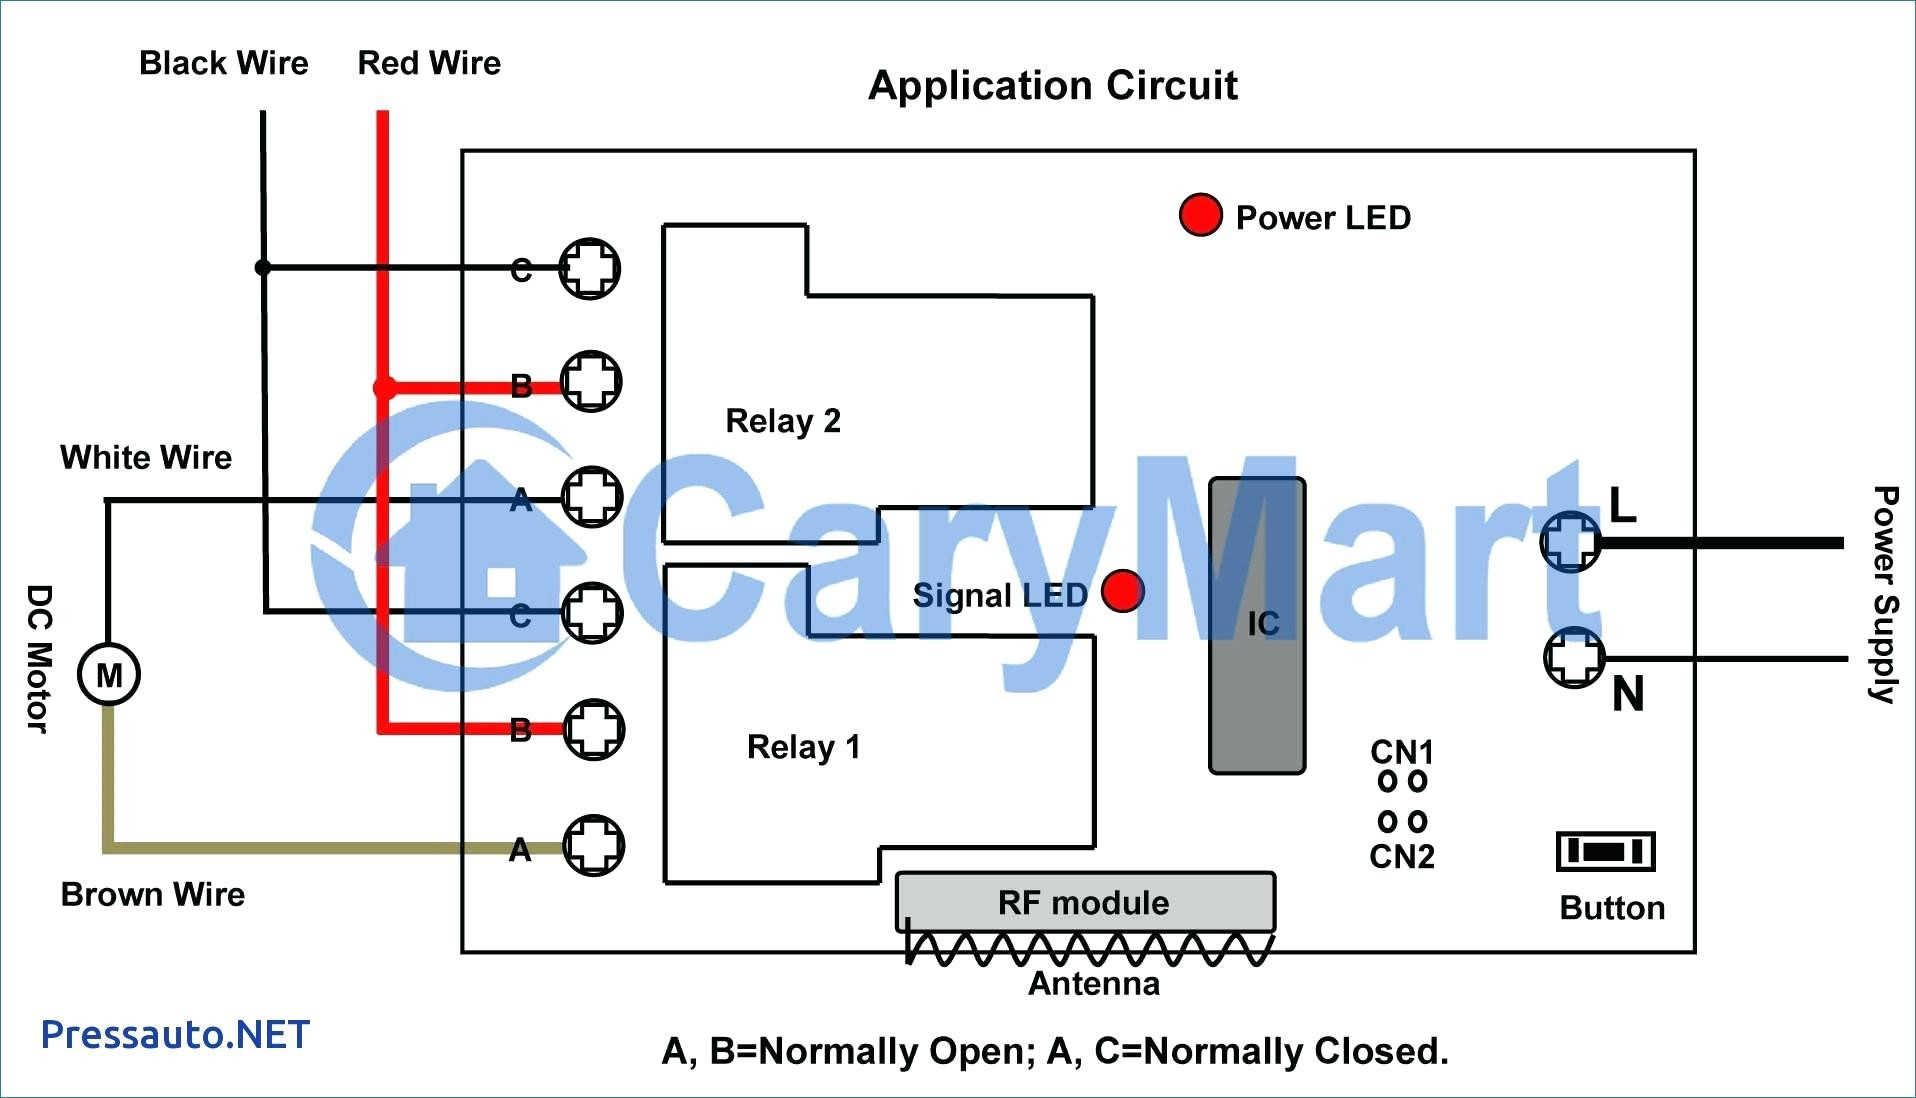 winch wireless remote control wiring diagram Download-Winch Controller Wiring Diagram Roc Grp Org Endear In Cab Control 11-t